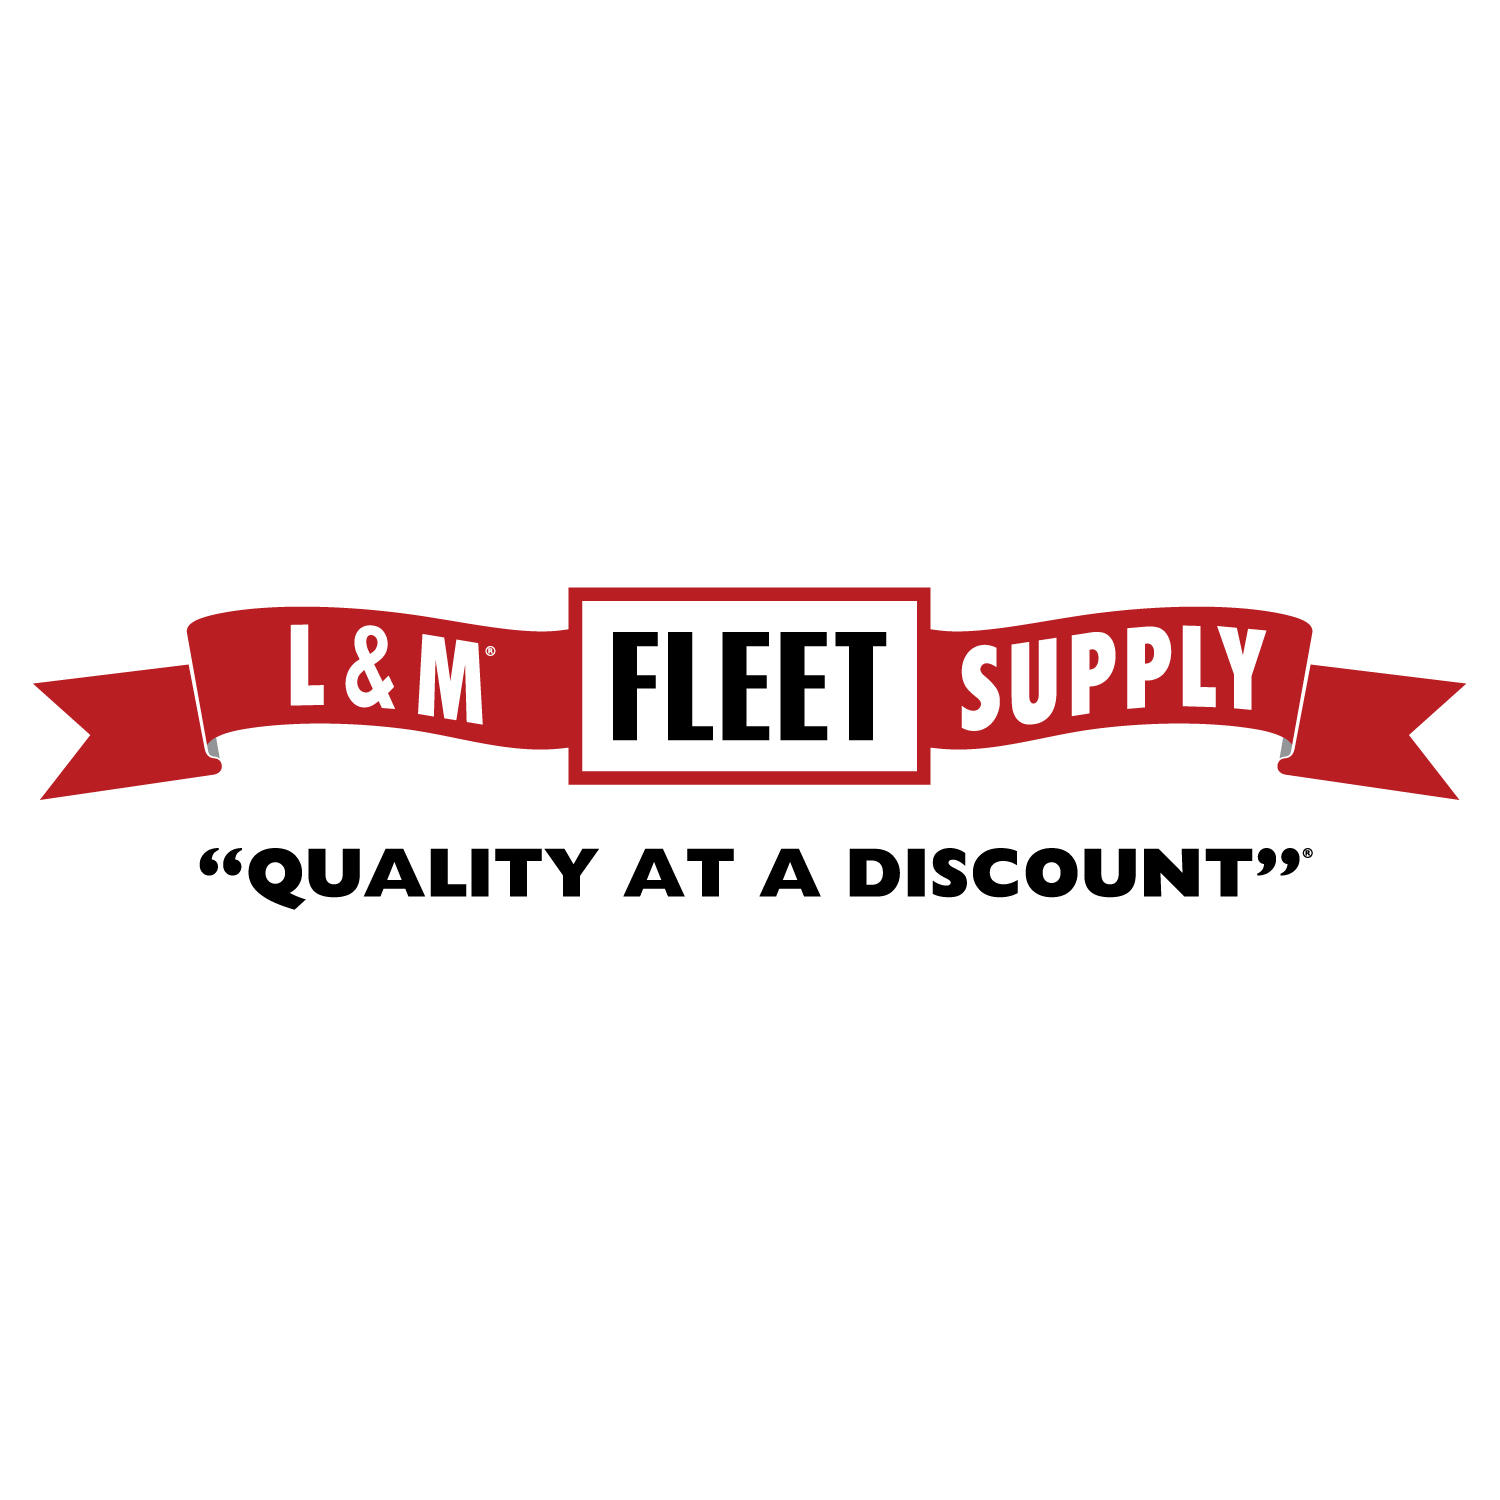 L&M Fleet Supply - Detroit Lakes, MN 56501 - (218)847-1171 | ShowMeLocal.com